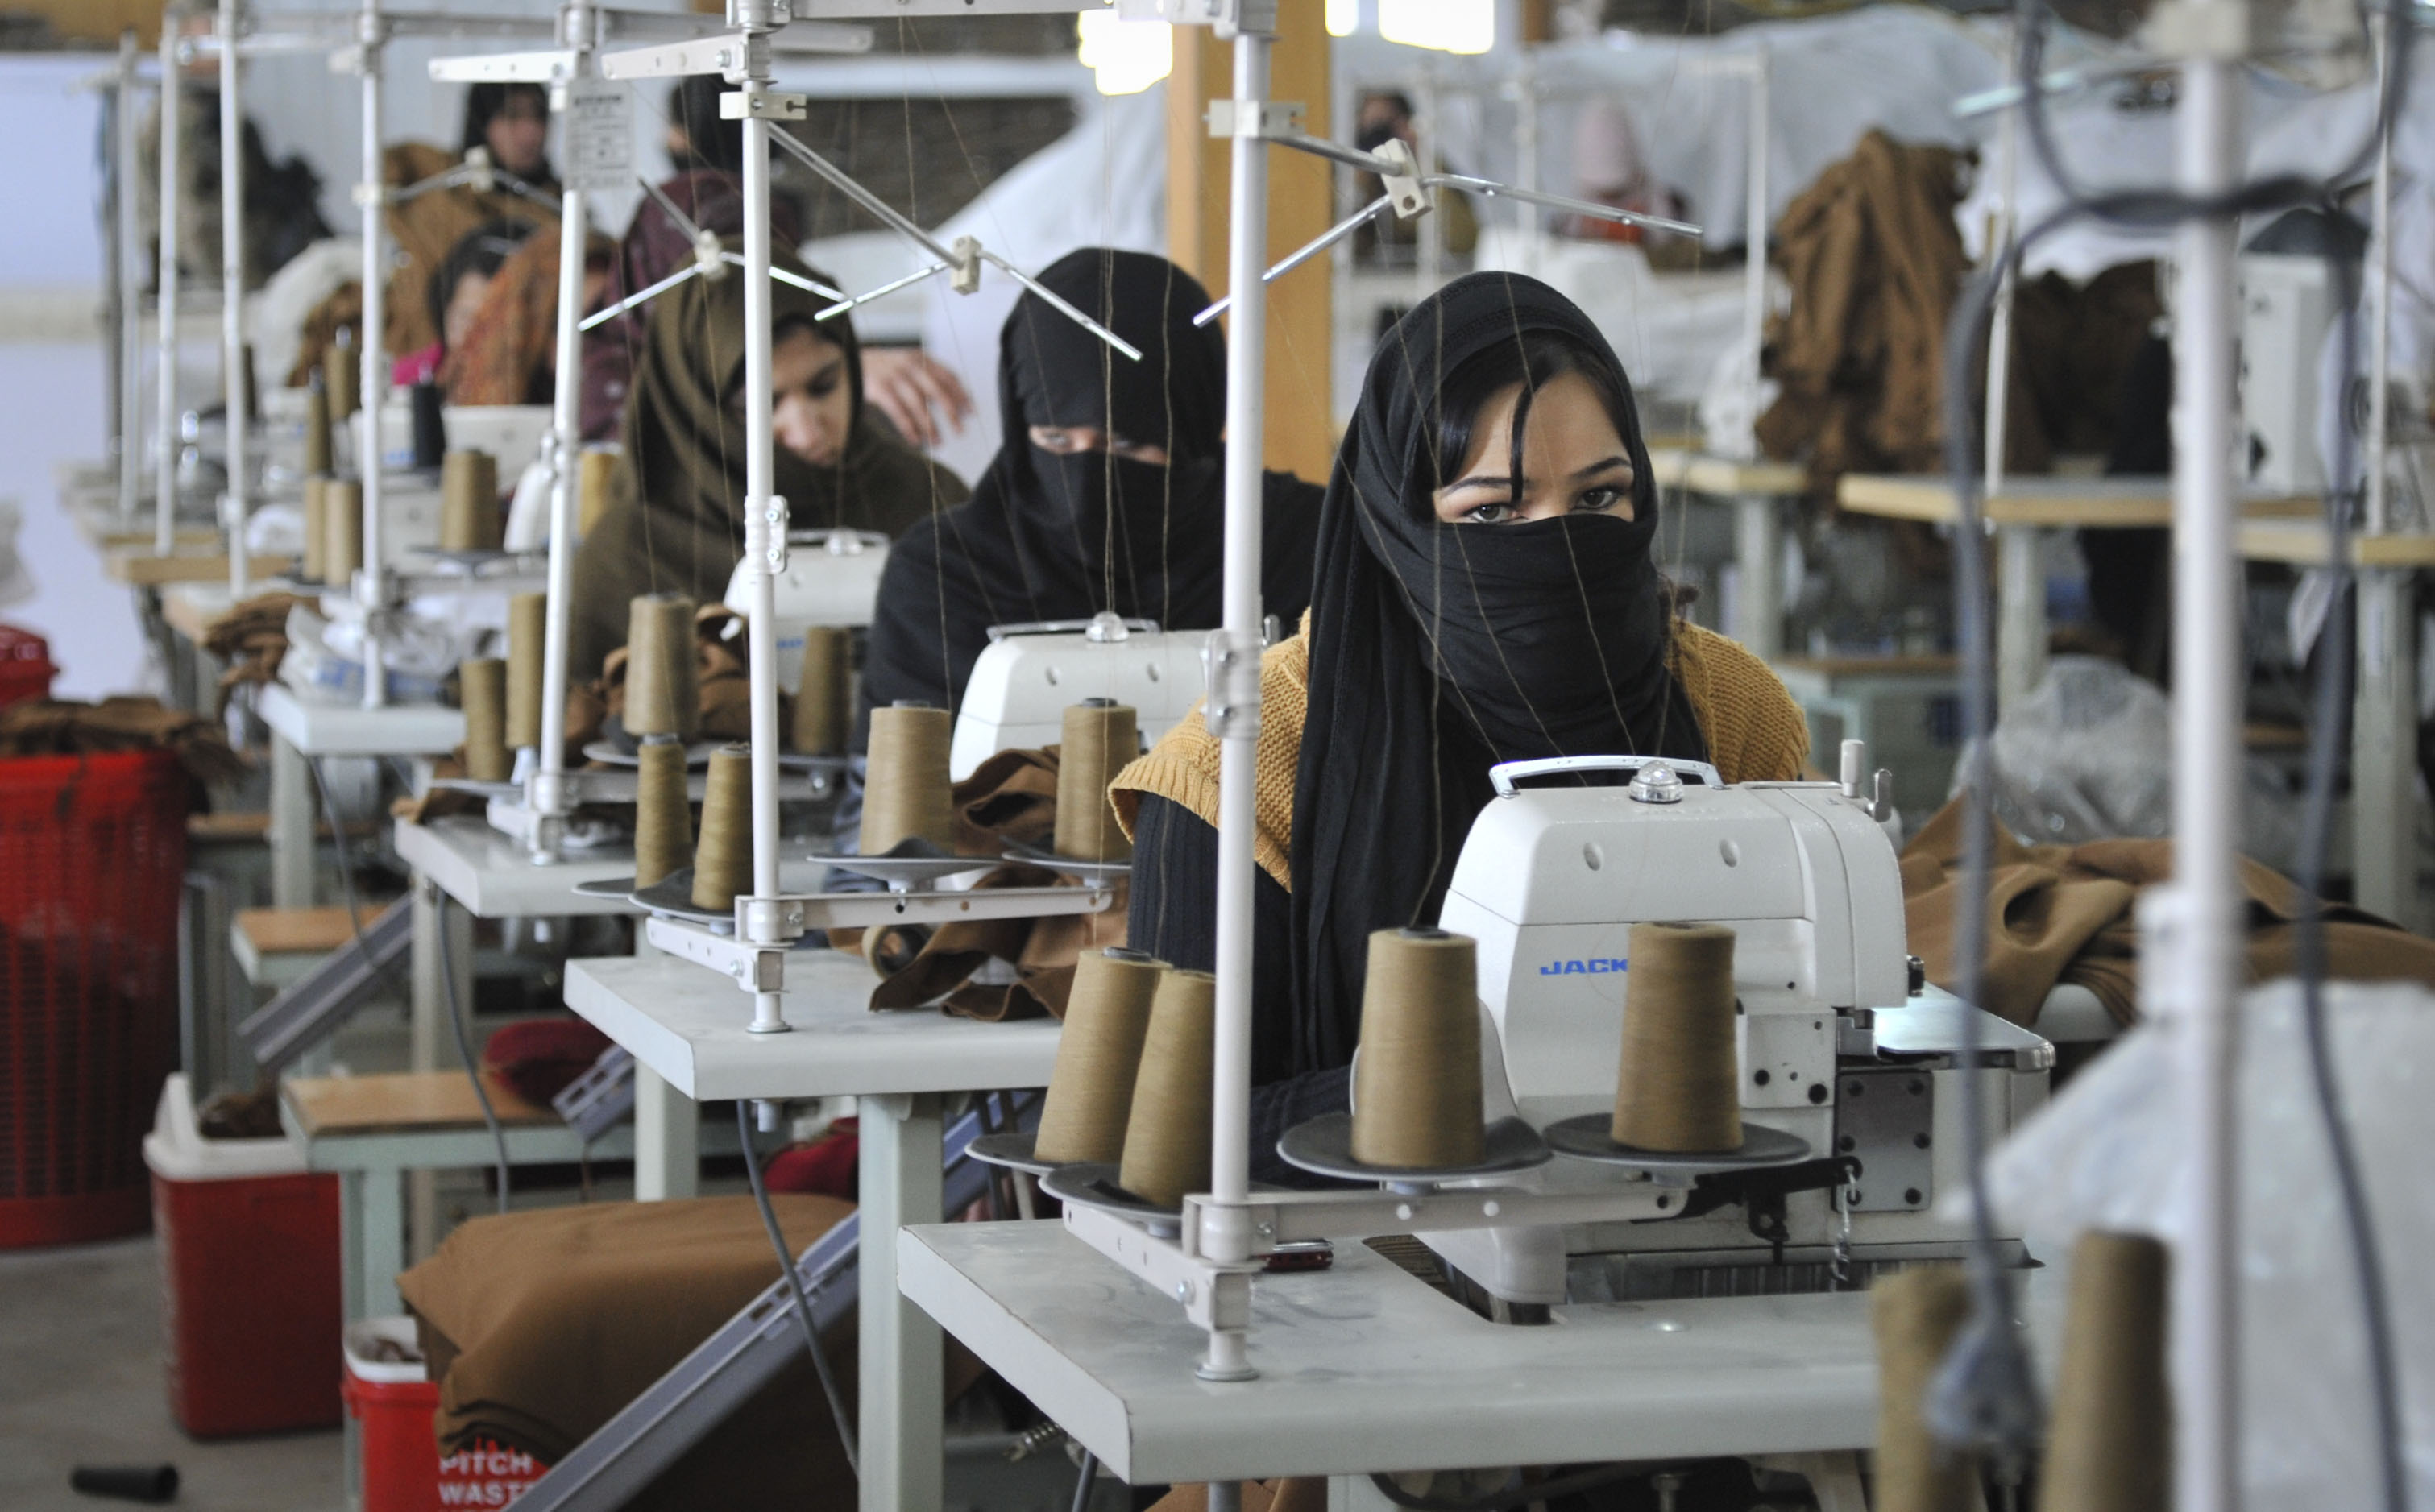 Afghan_women_at_a_textile_factory_in_Kabul.jpg